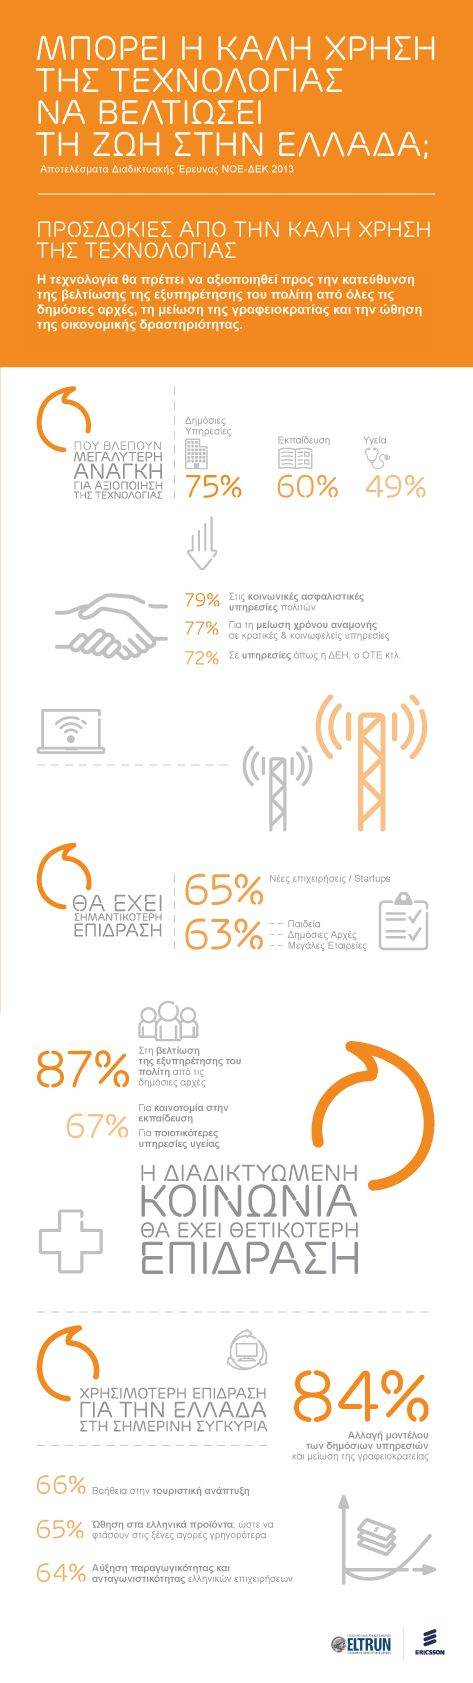 "Greek citizens online survey by @Eltrun and #Ericsson - ""How technology for good can improve our lives in Greece?"" - infographic2"